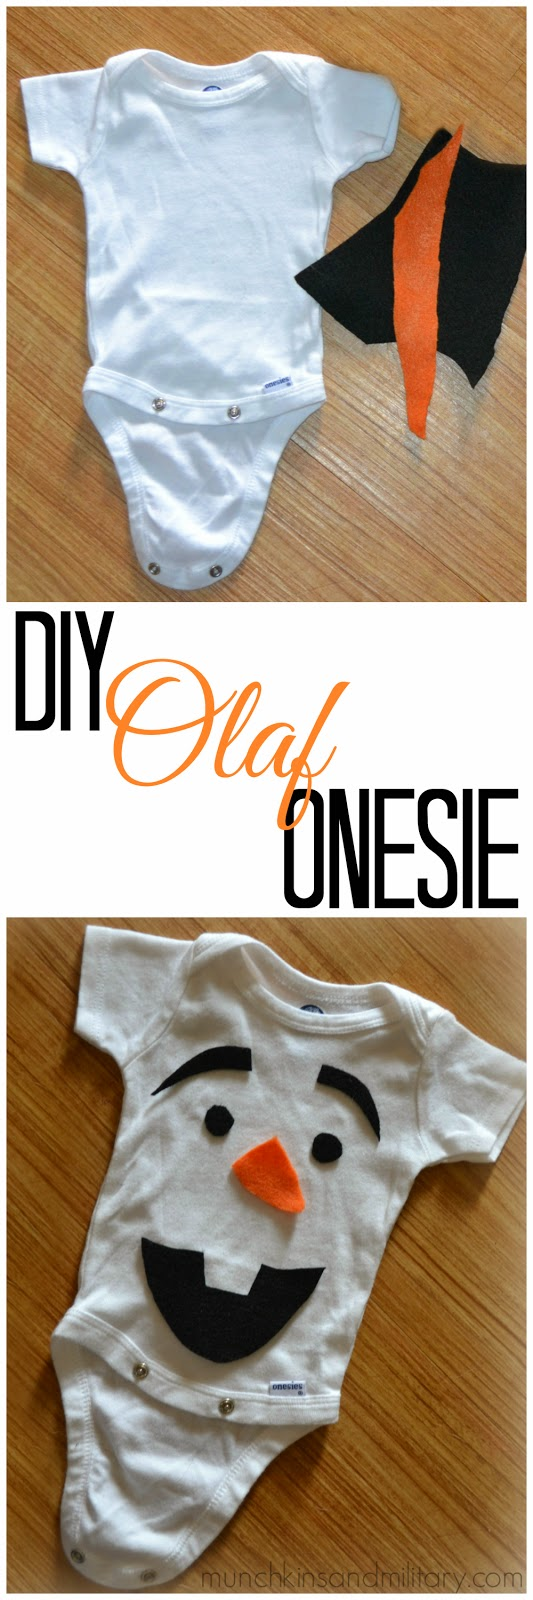 Pinable DIY Olaf onesie